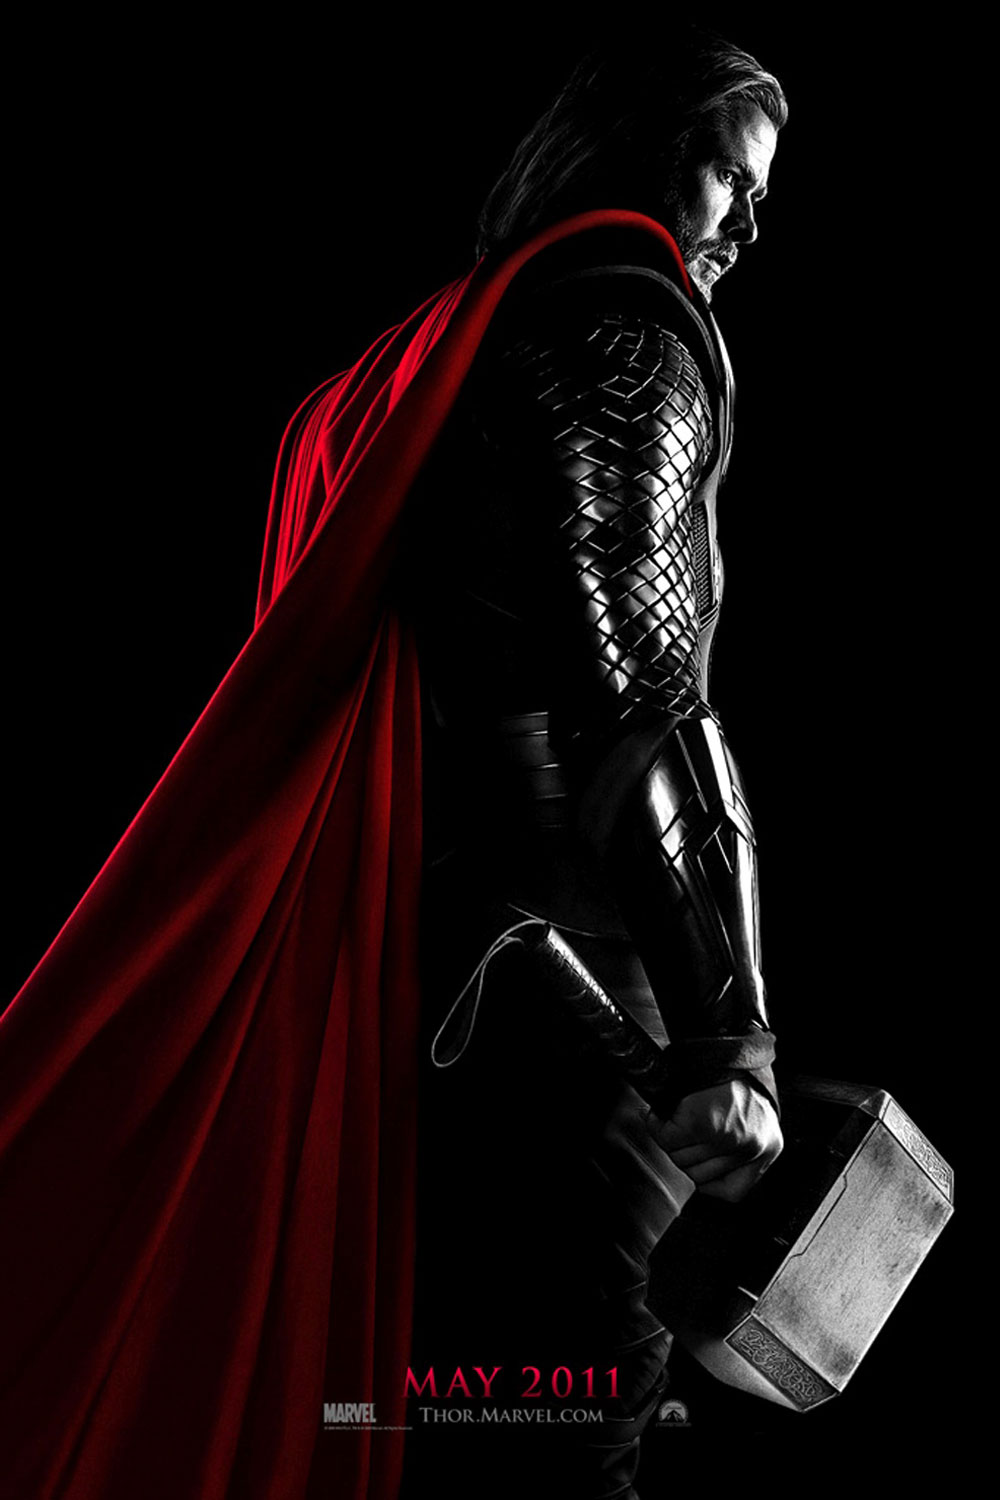 marvel s thor movie poster chris hemsworth has his hammer ready